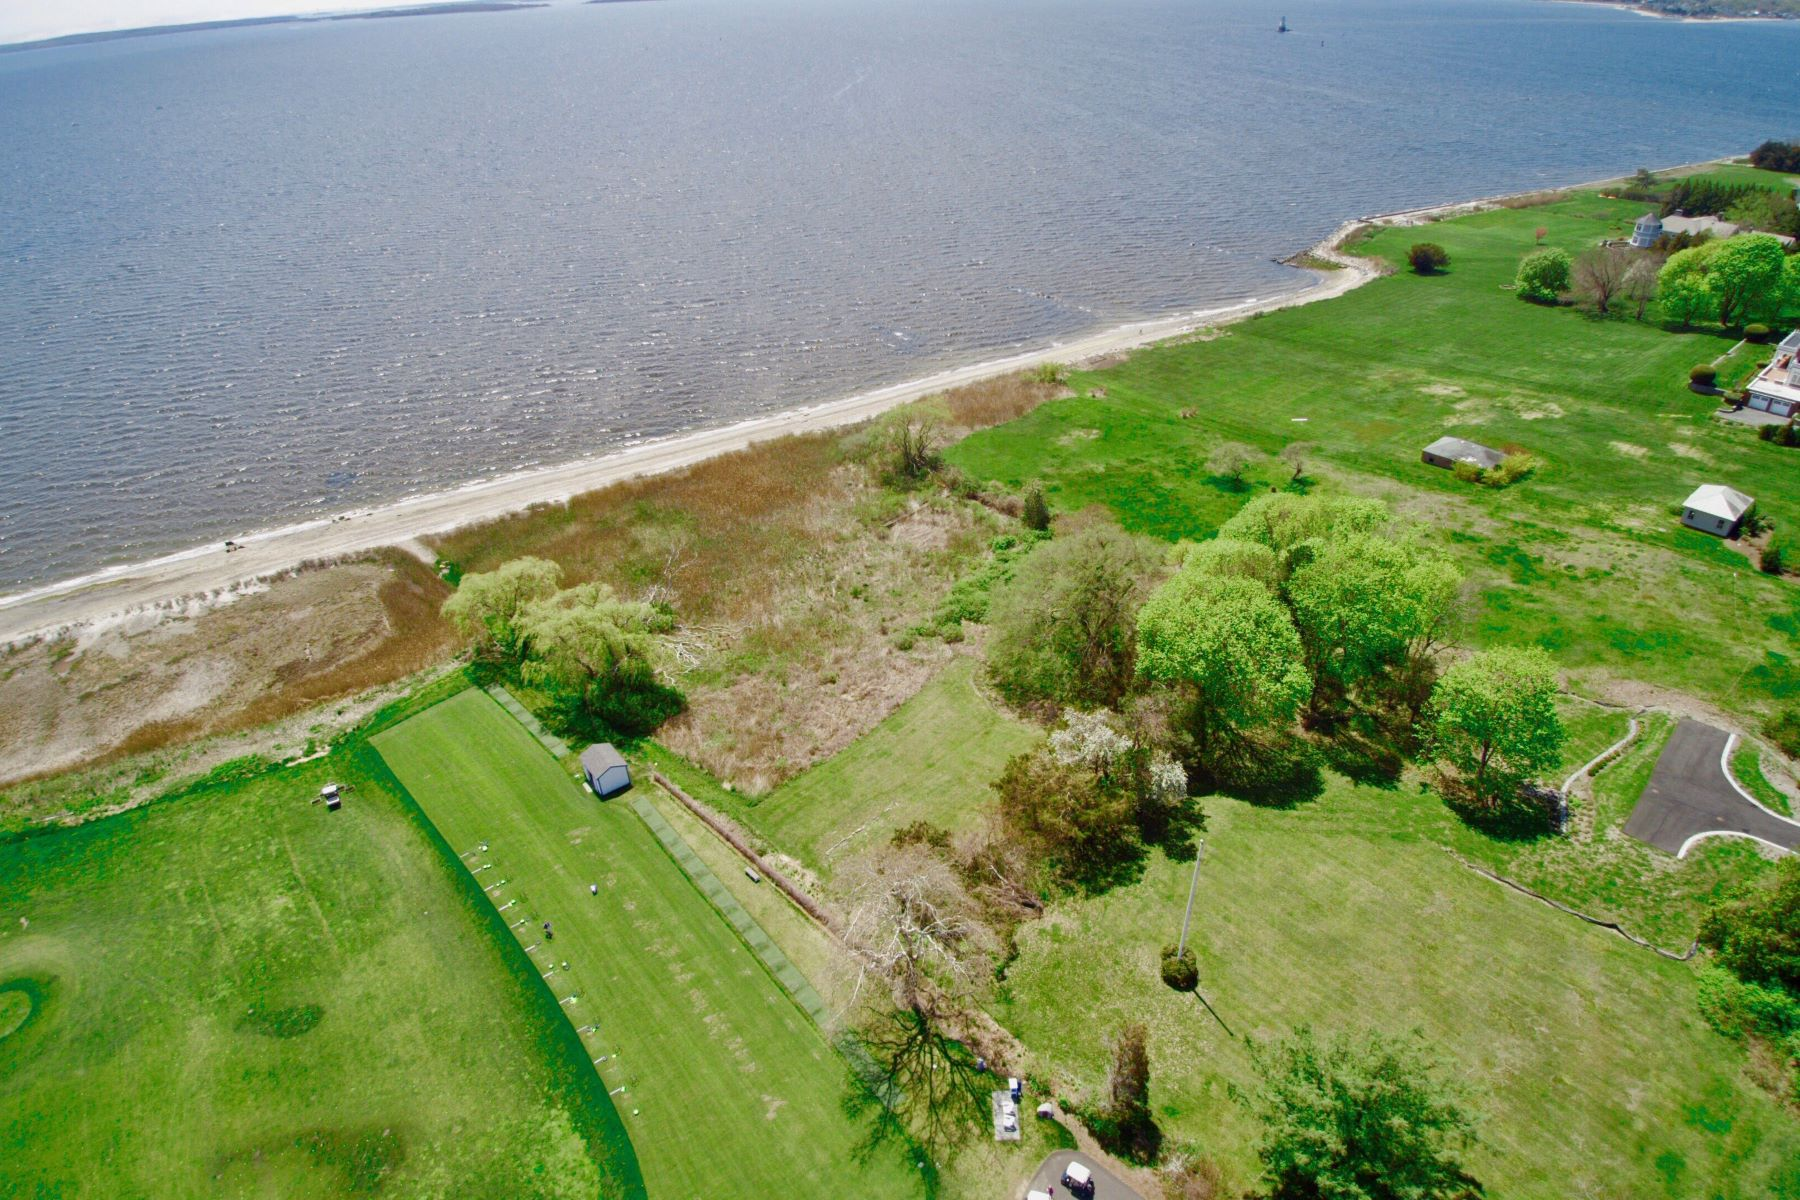 Land for Sale at 0 Nayatt Road, Barrington, RI 0 Nayatt Road Barrington, Rhode Island 02806 United States